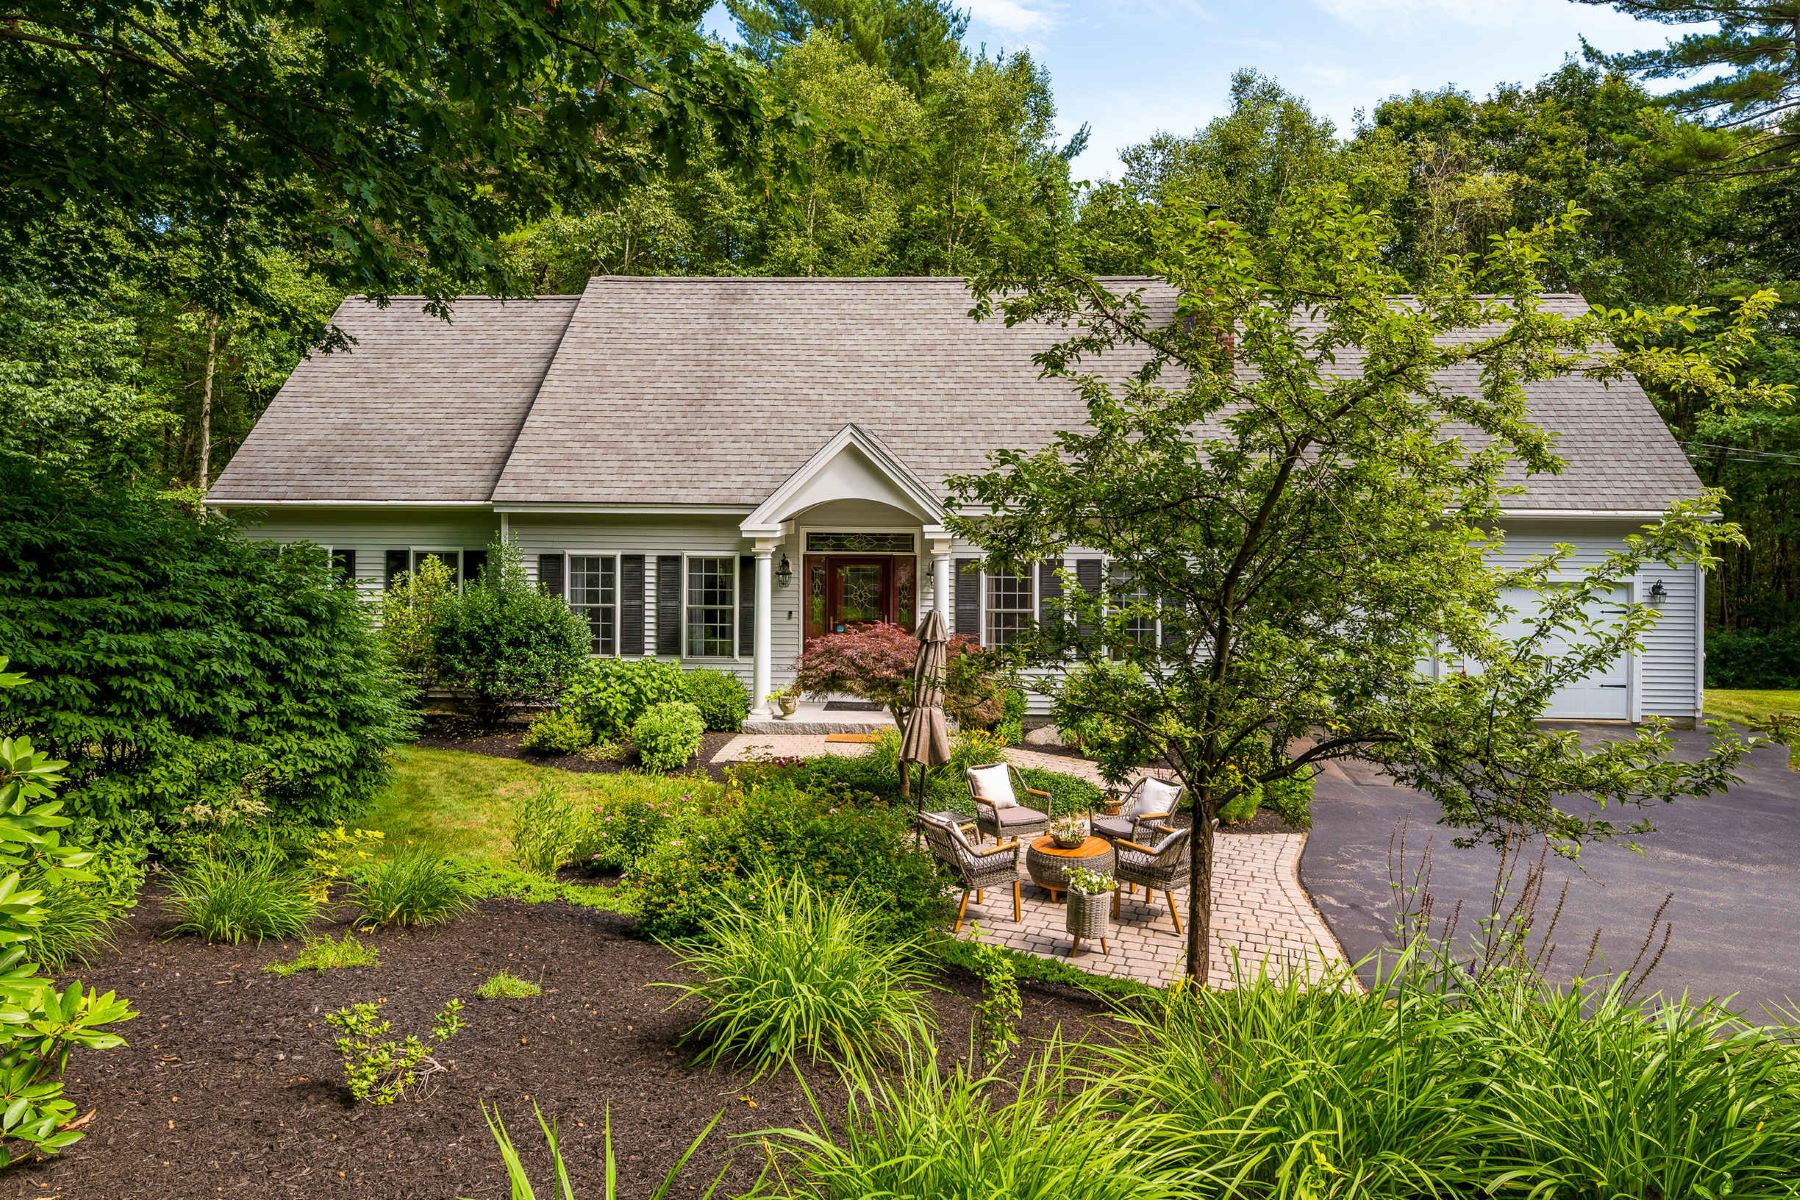 Single Family Homes for Active at Meticulous Cape on Private Cul-de-sac in Kittery Point 14 Lynch Lane Kittery, Maine 03905 United States